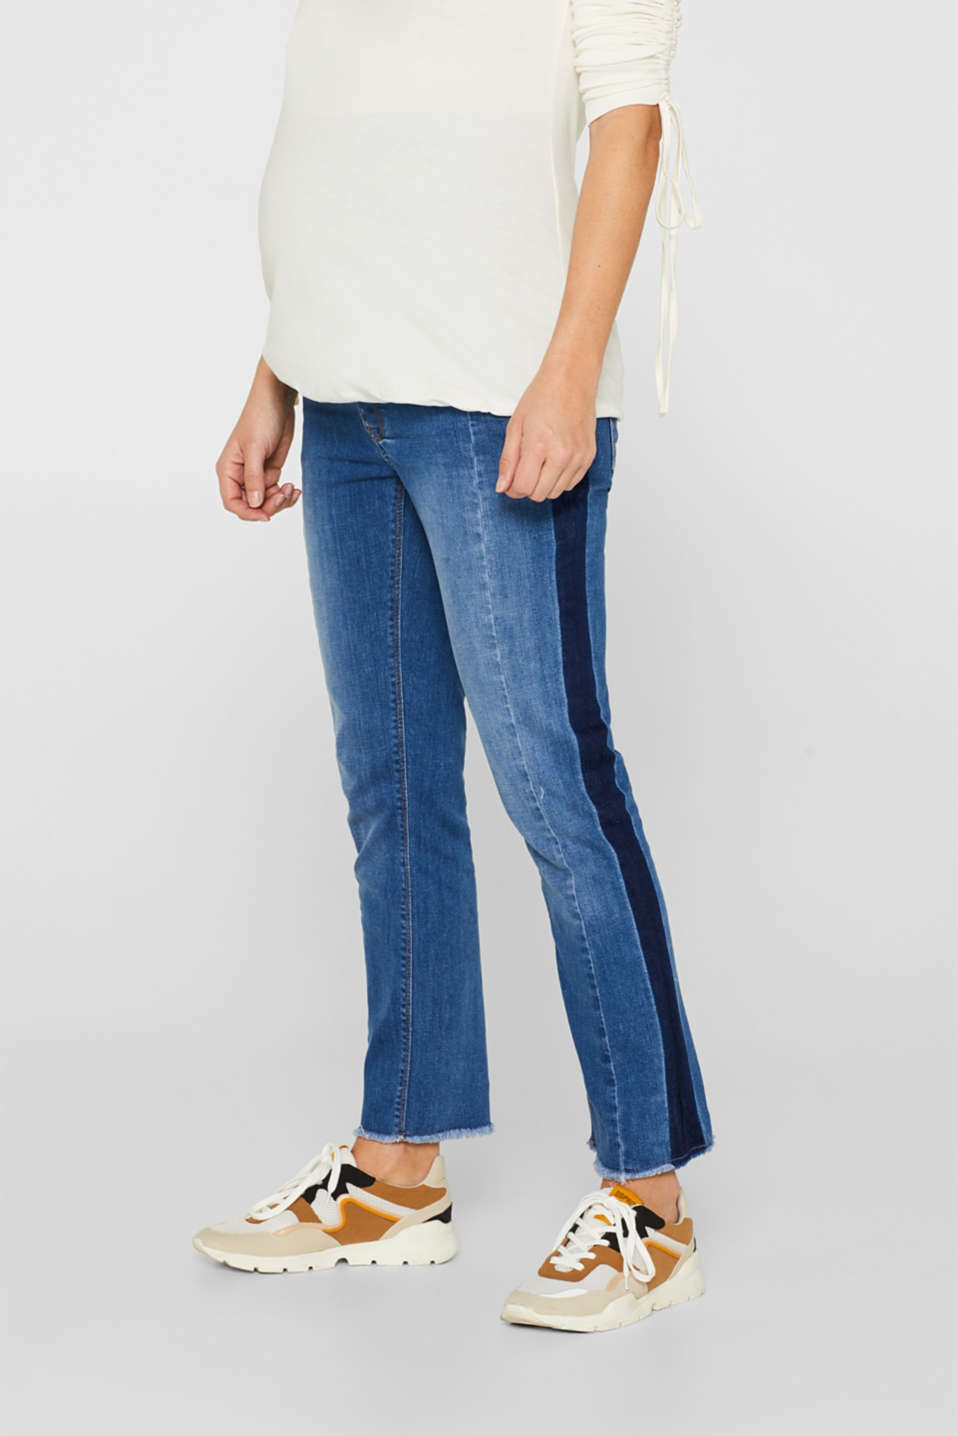 Esprit - 7/8 stretch jeans with an under-bump waistband